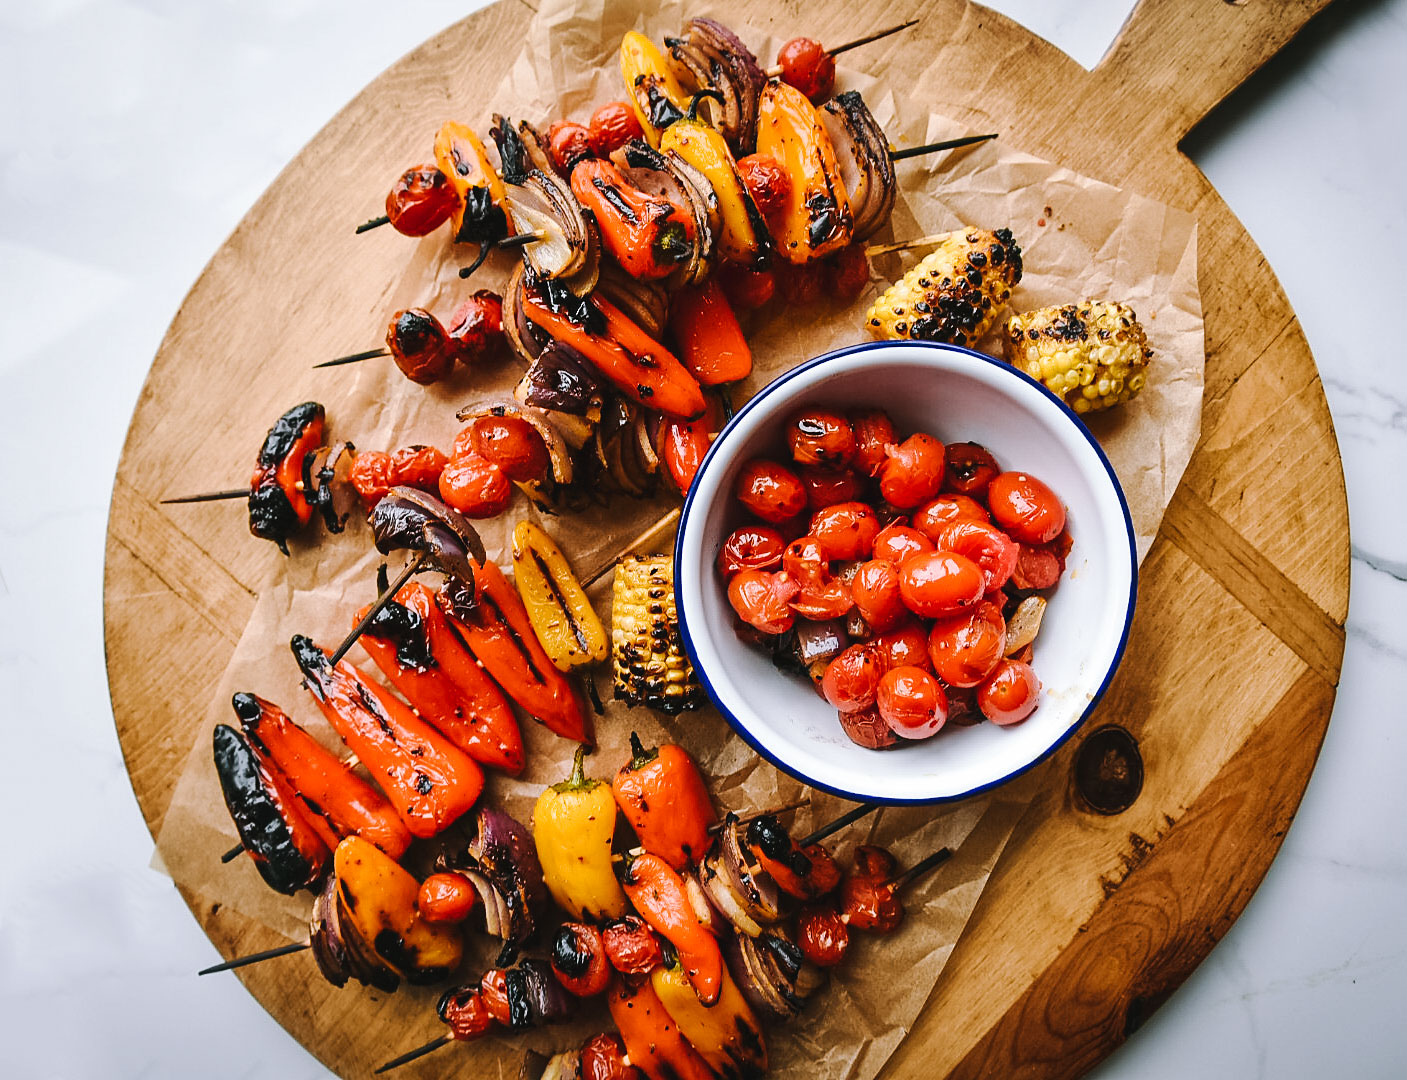 grilled veggies honey aleppo pepper spicy sweet victoria gourmet recipe